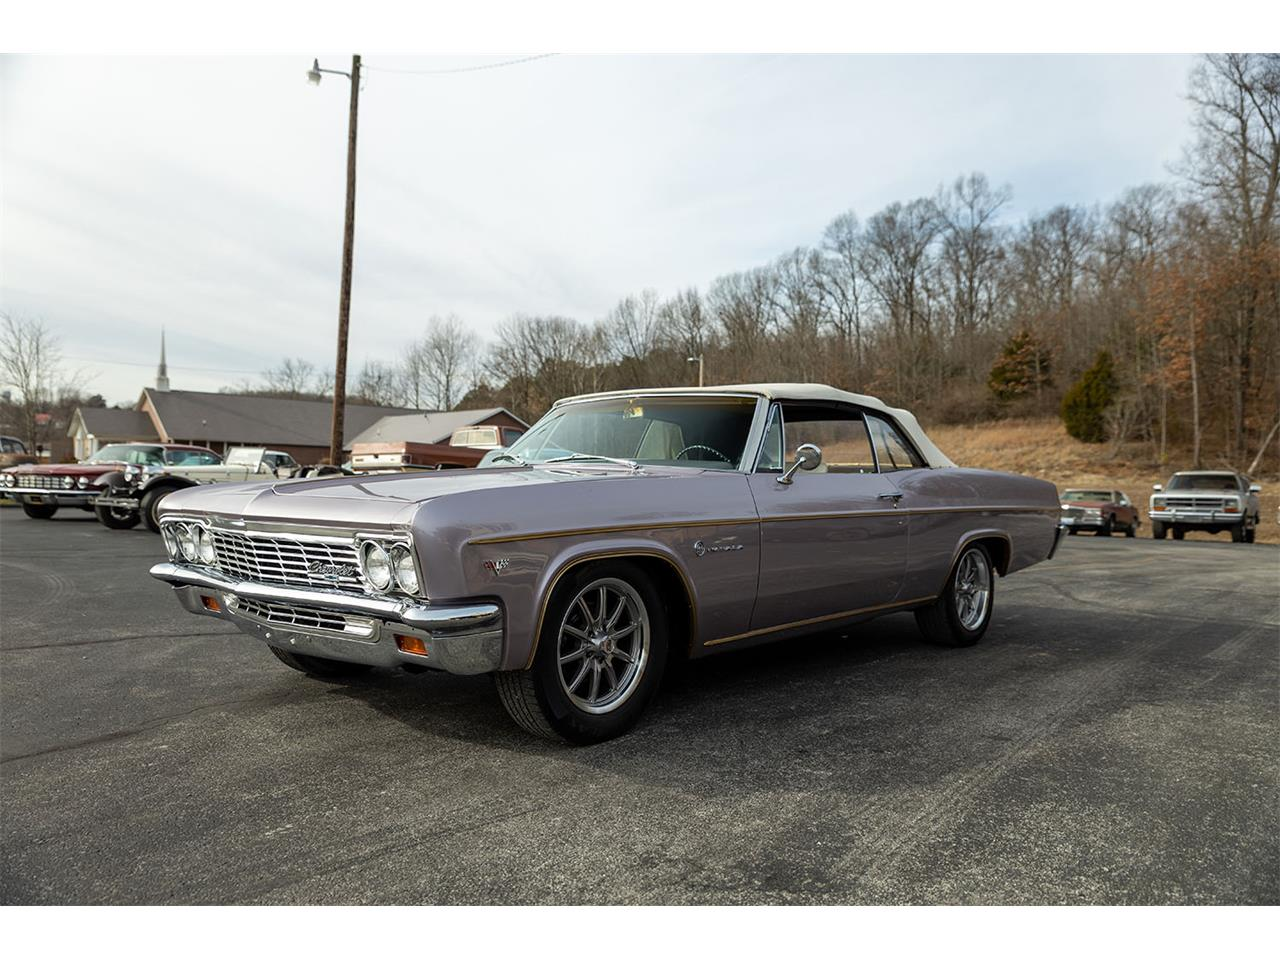 1966 Chevrolet Impala (CC-1305938) for sale in Dongola, Illinois